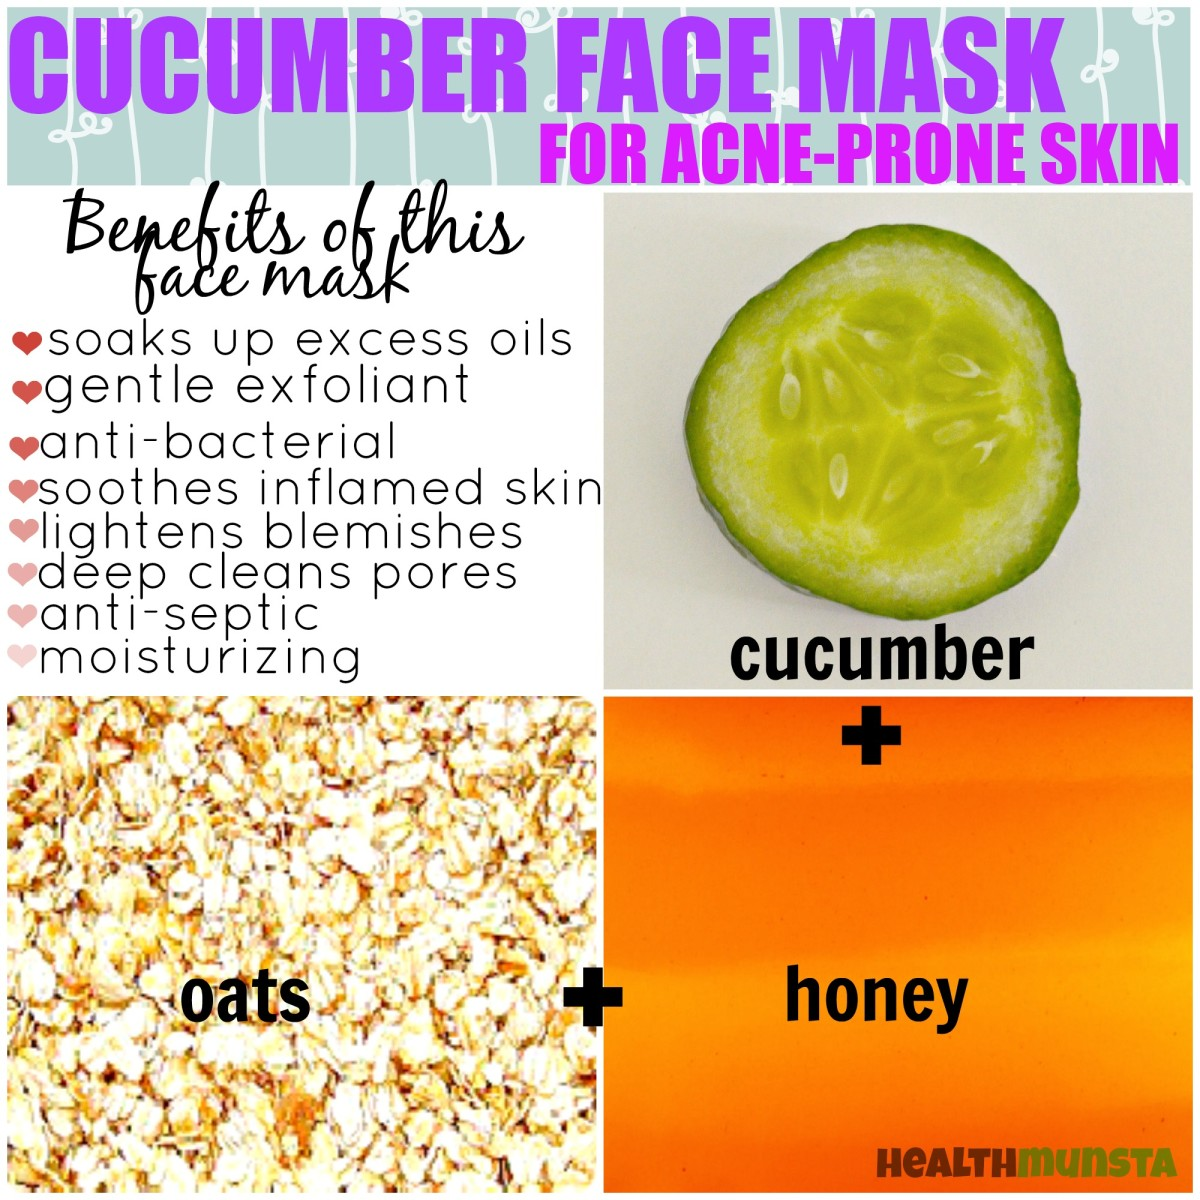 Best Face Masks For Acne Prone Skin: 5 DIY Cucumber Mask Recipes For A Flawless Skin